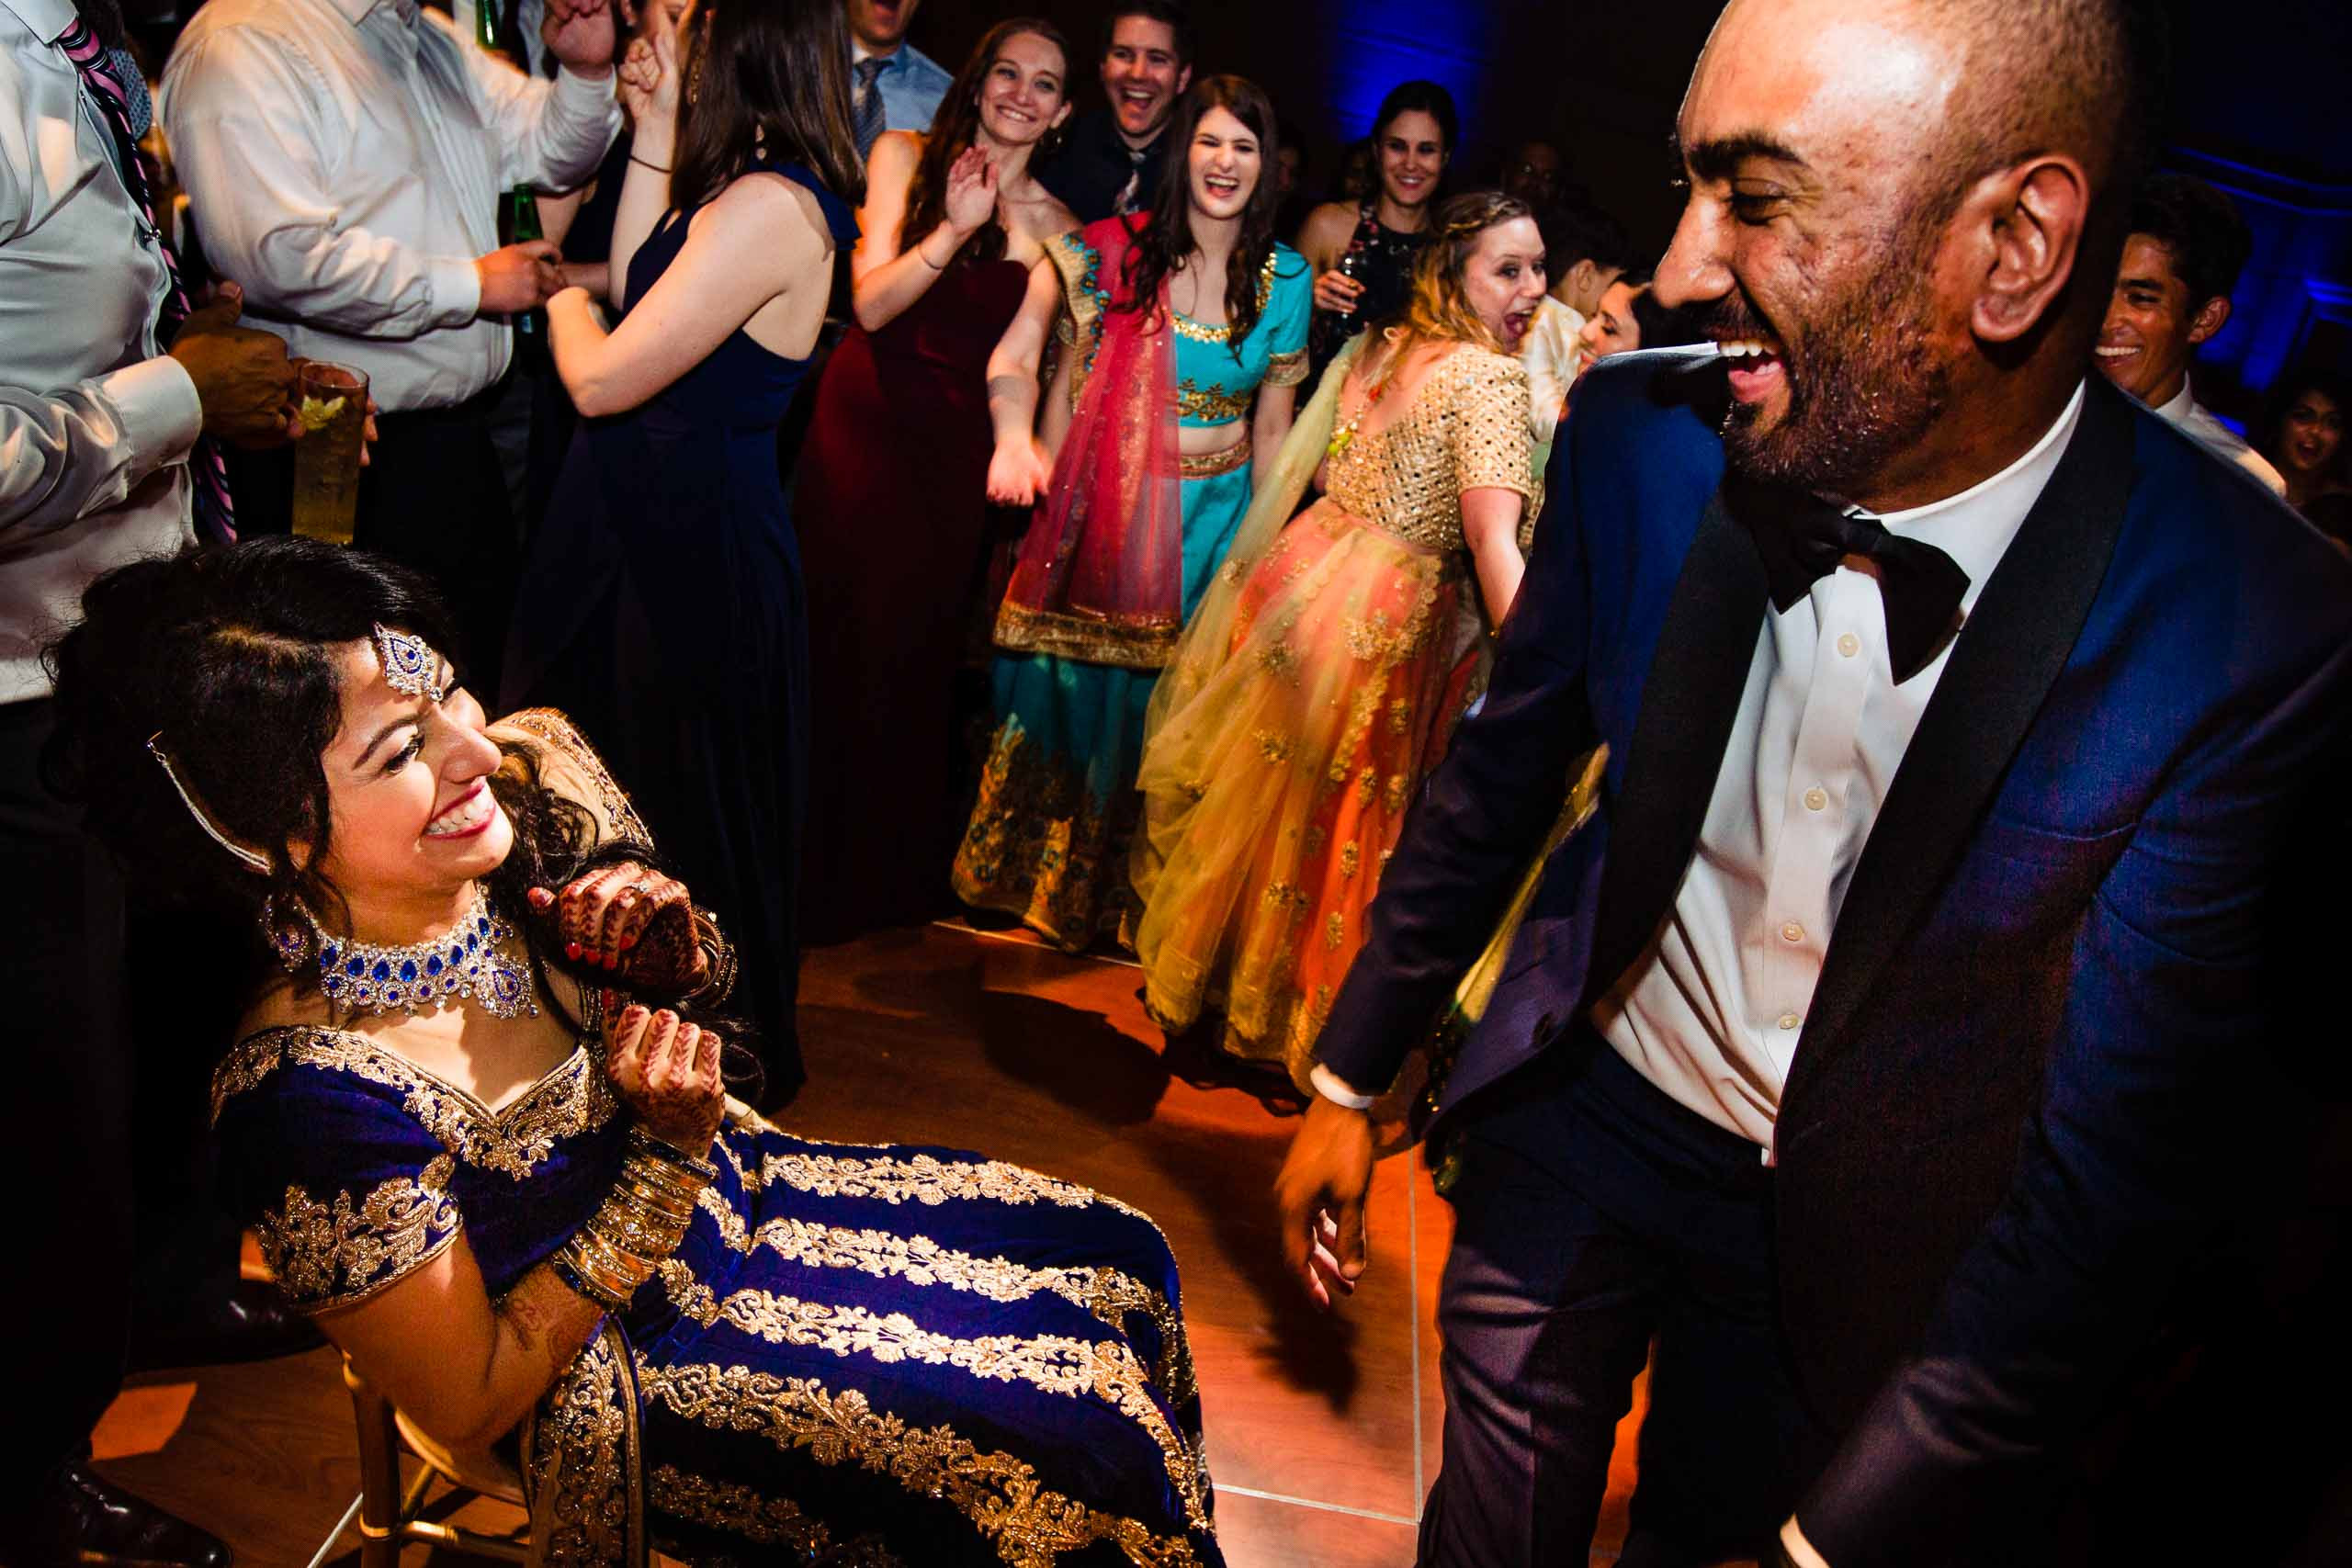 Ecstatic dancing photo of an Indian bride and groom during her Portland Art museum wedding.